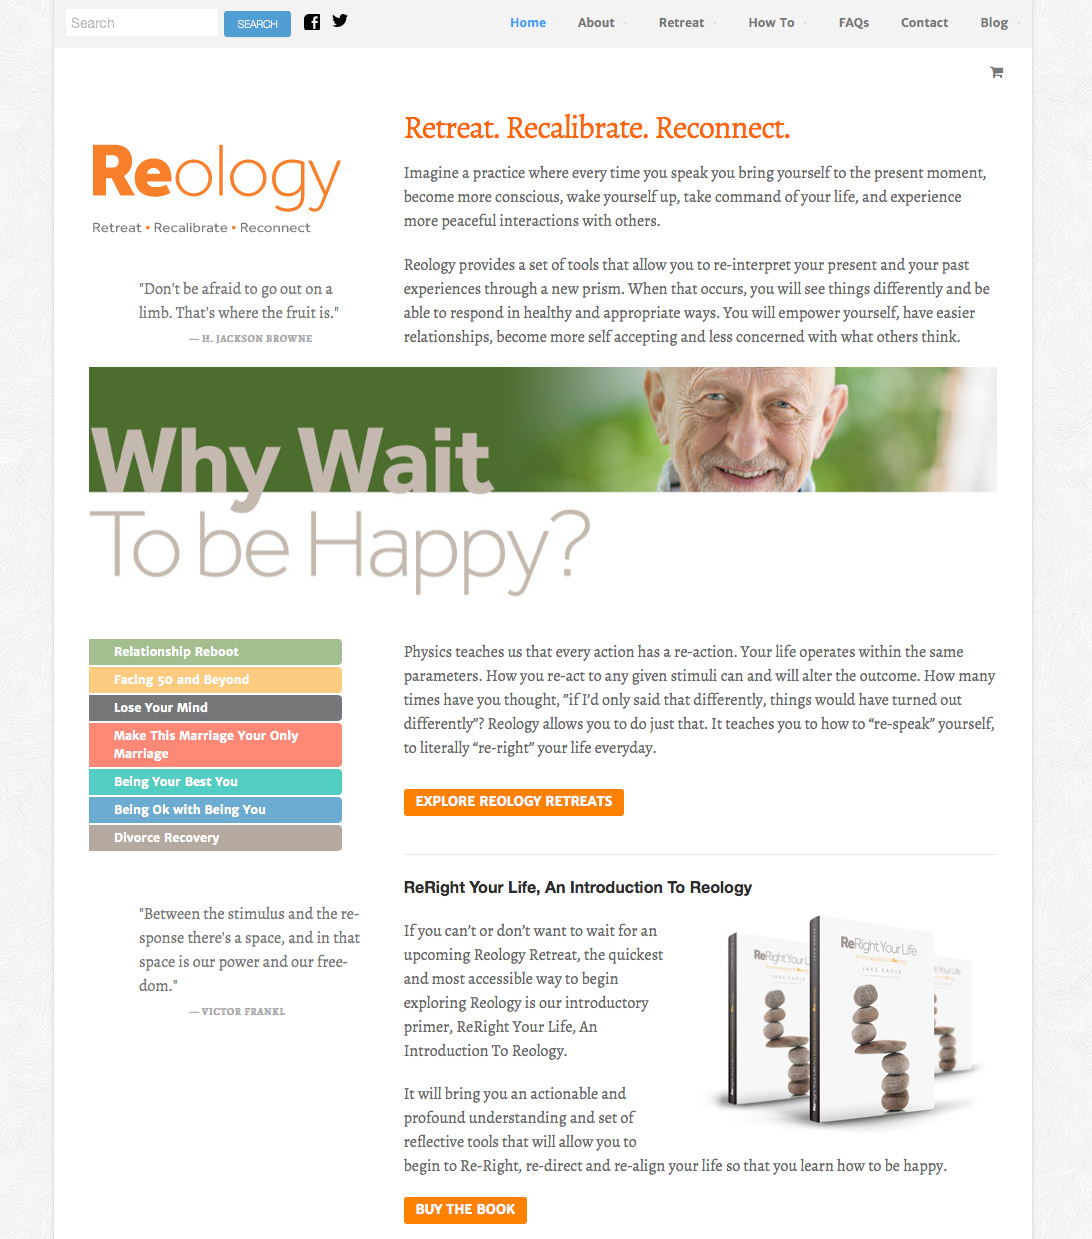 Mobile responsive website design for Reology.org